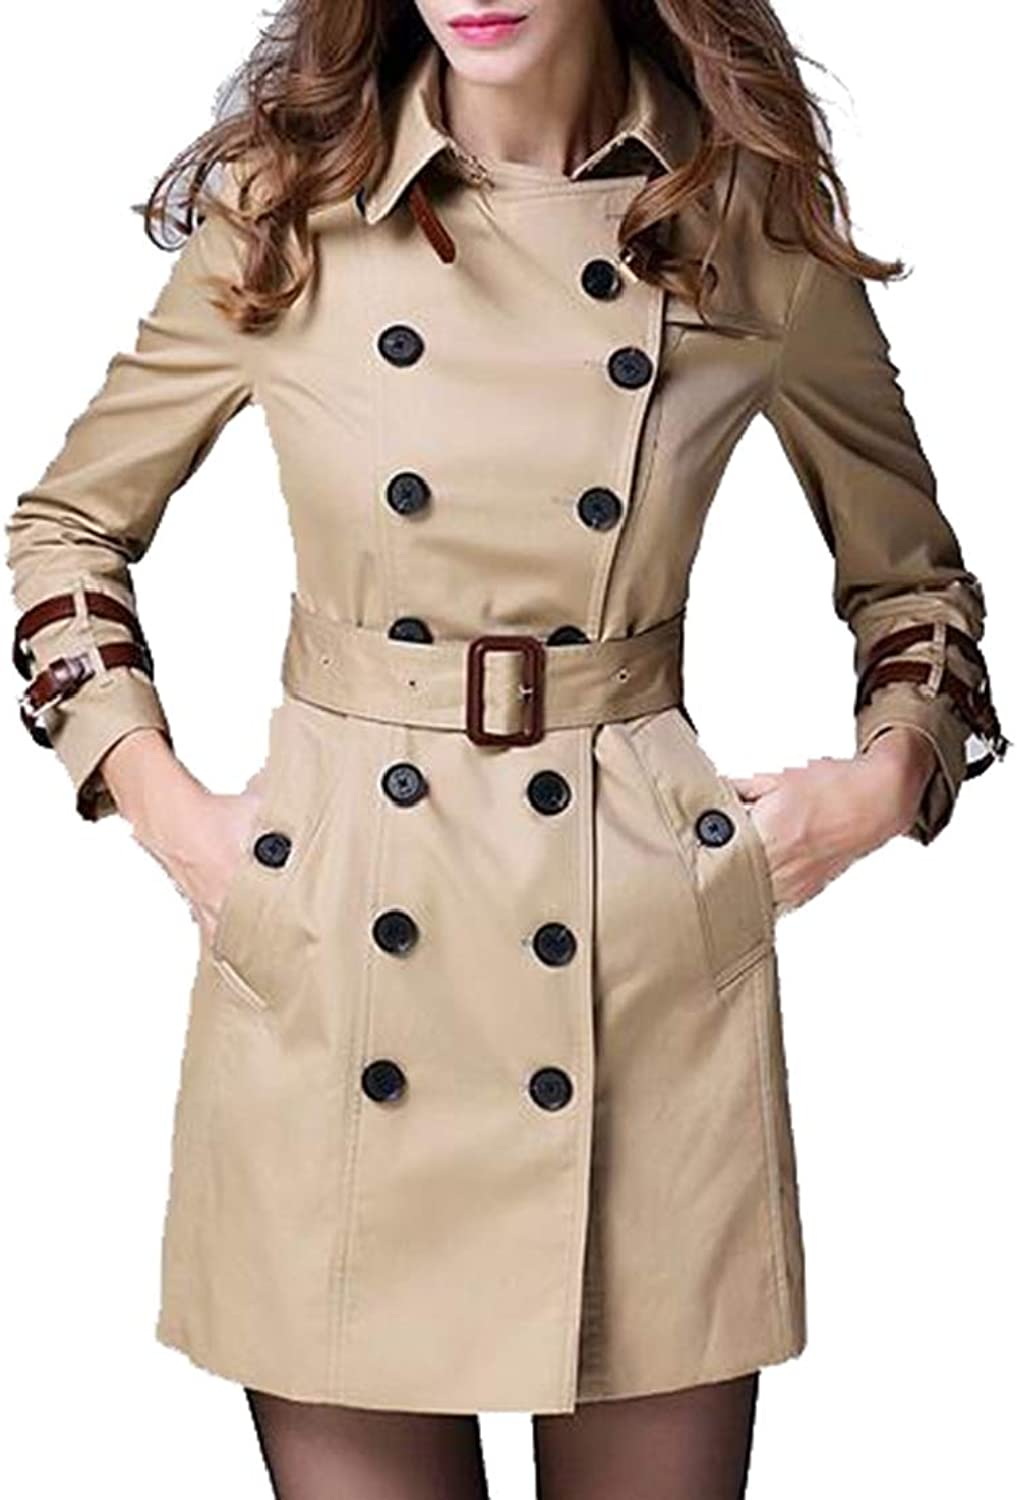 Emastor Women's DoubleBreasted Slim Solid WoolBlend Winter Pea Coats with Belt